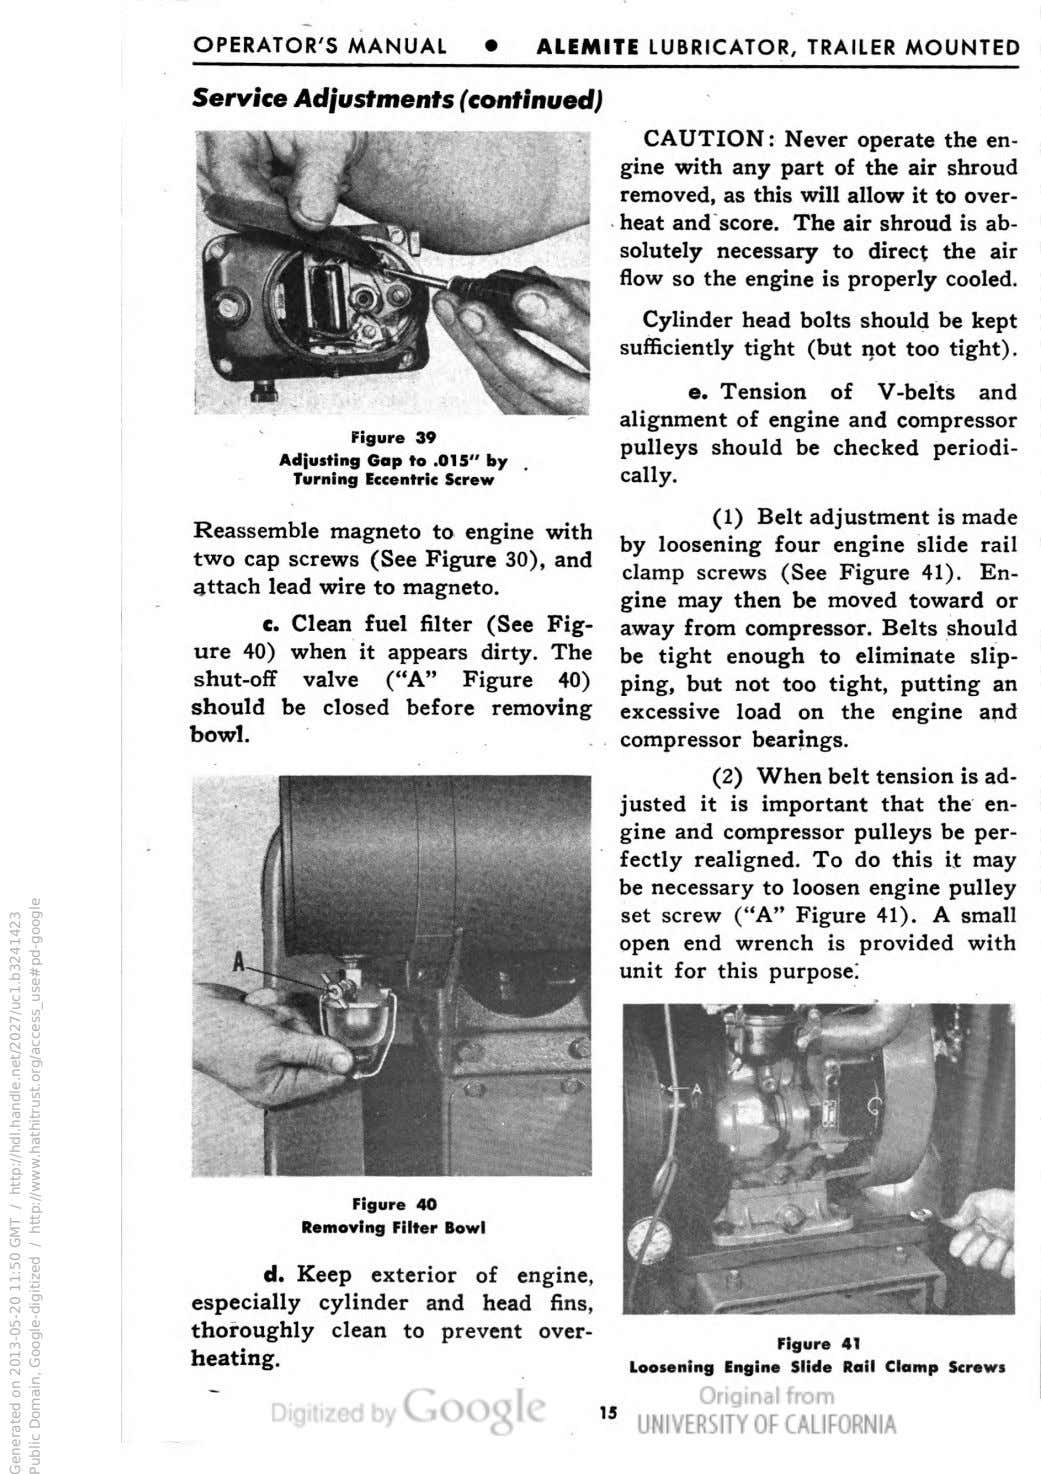 OPERATOR'S MANUAL ALEMITE LUBRICATOR, TRAILER MOUNTED Service Adjustments (continued) Figure 39 Adjusting Gap to